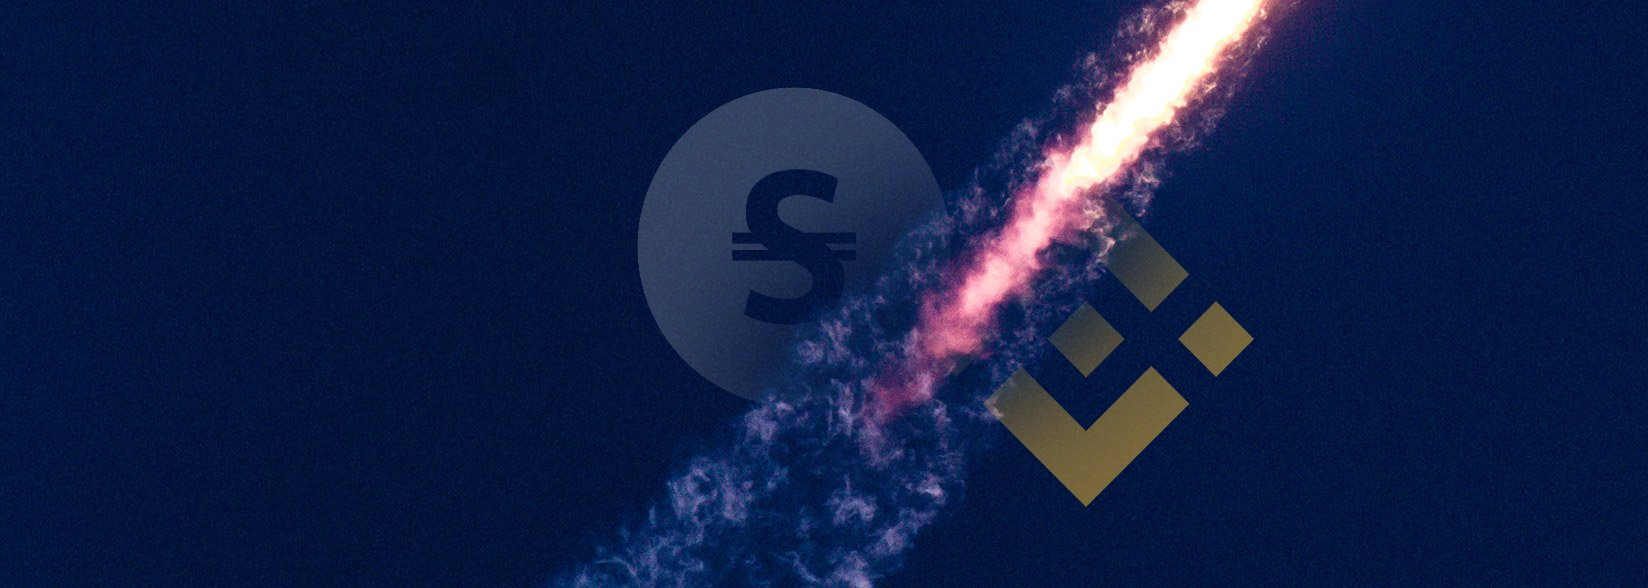 stably-binance-cover.jpg